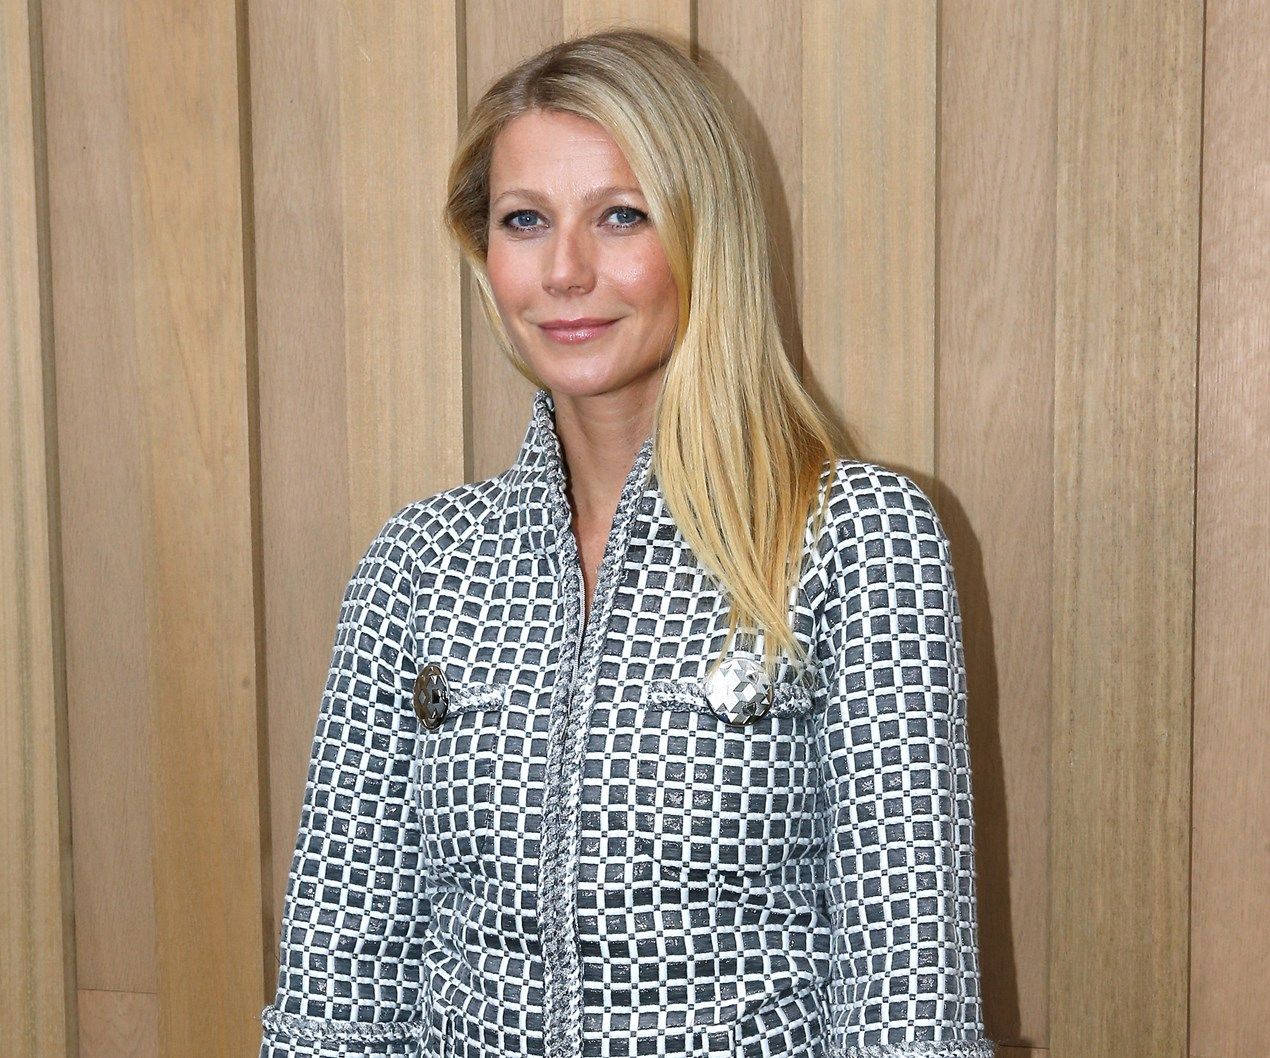 Gwyneth Paltrow's daughter Apple looks just like her